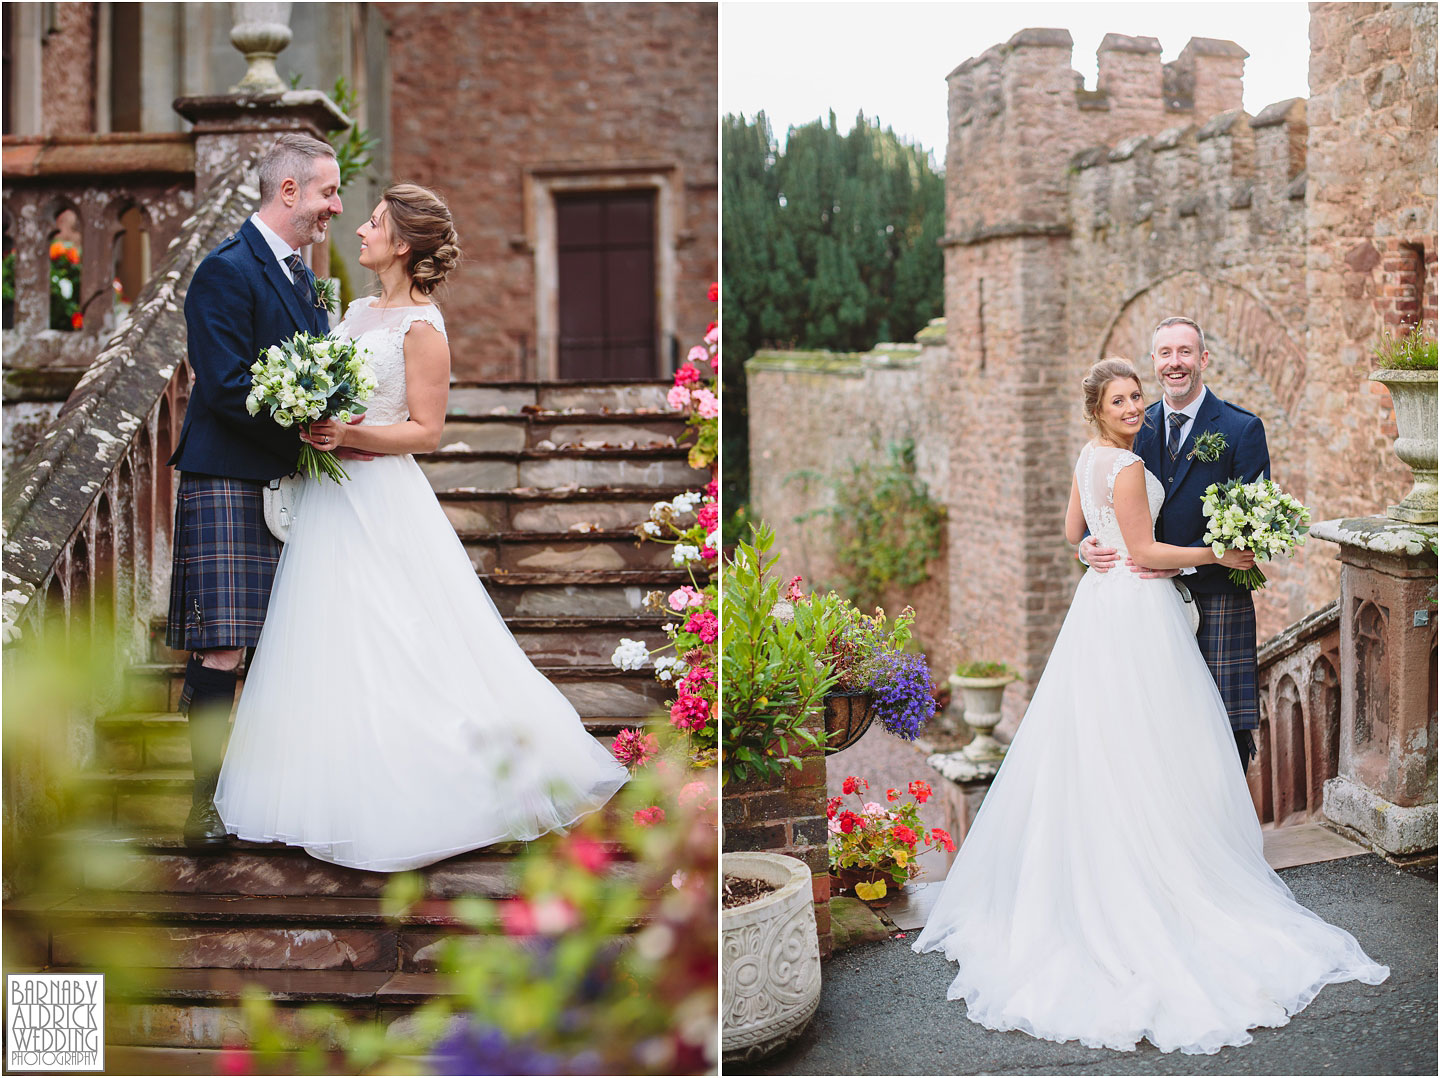 Wedding portraits at Rowton Castle, Shropshire Wedding Photographer, Shrewsbury wedding venue, Amazing UK Castle Wedding